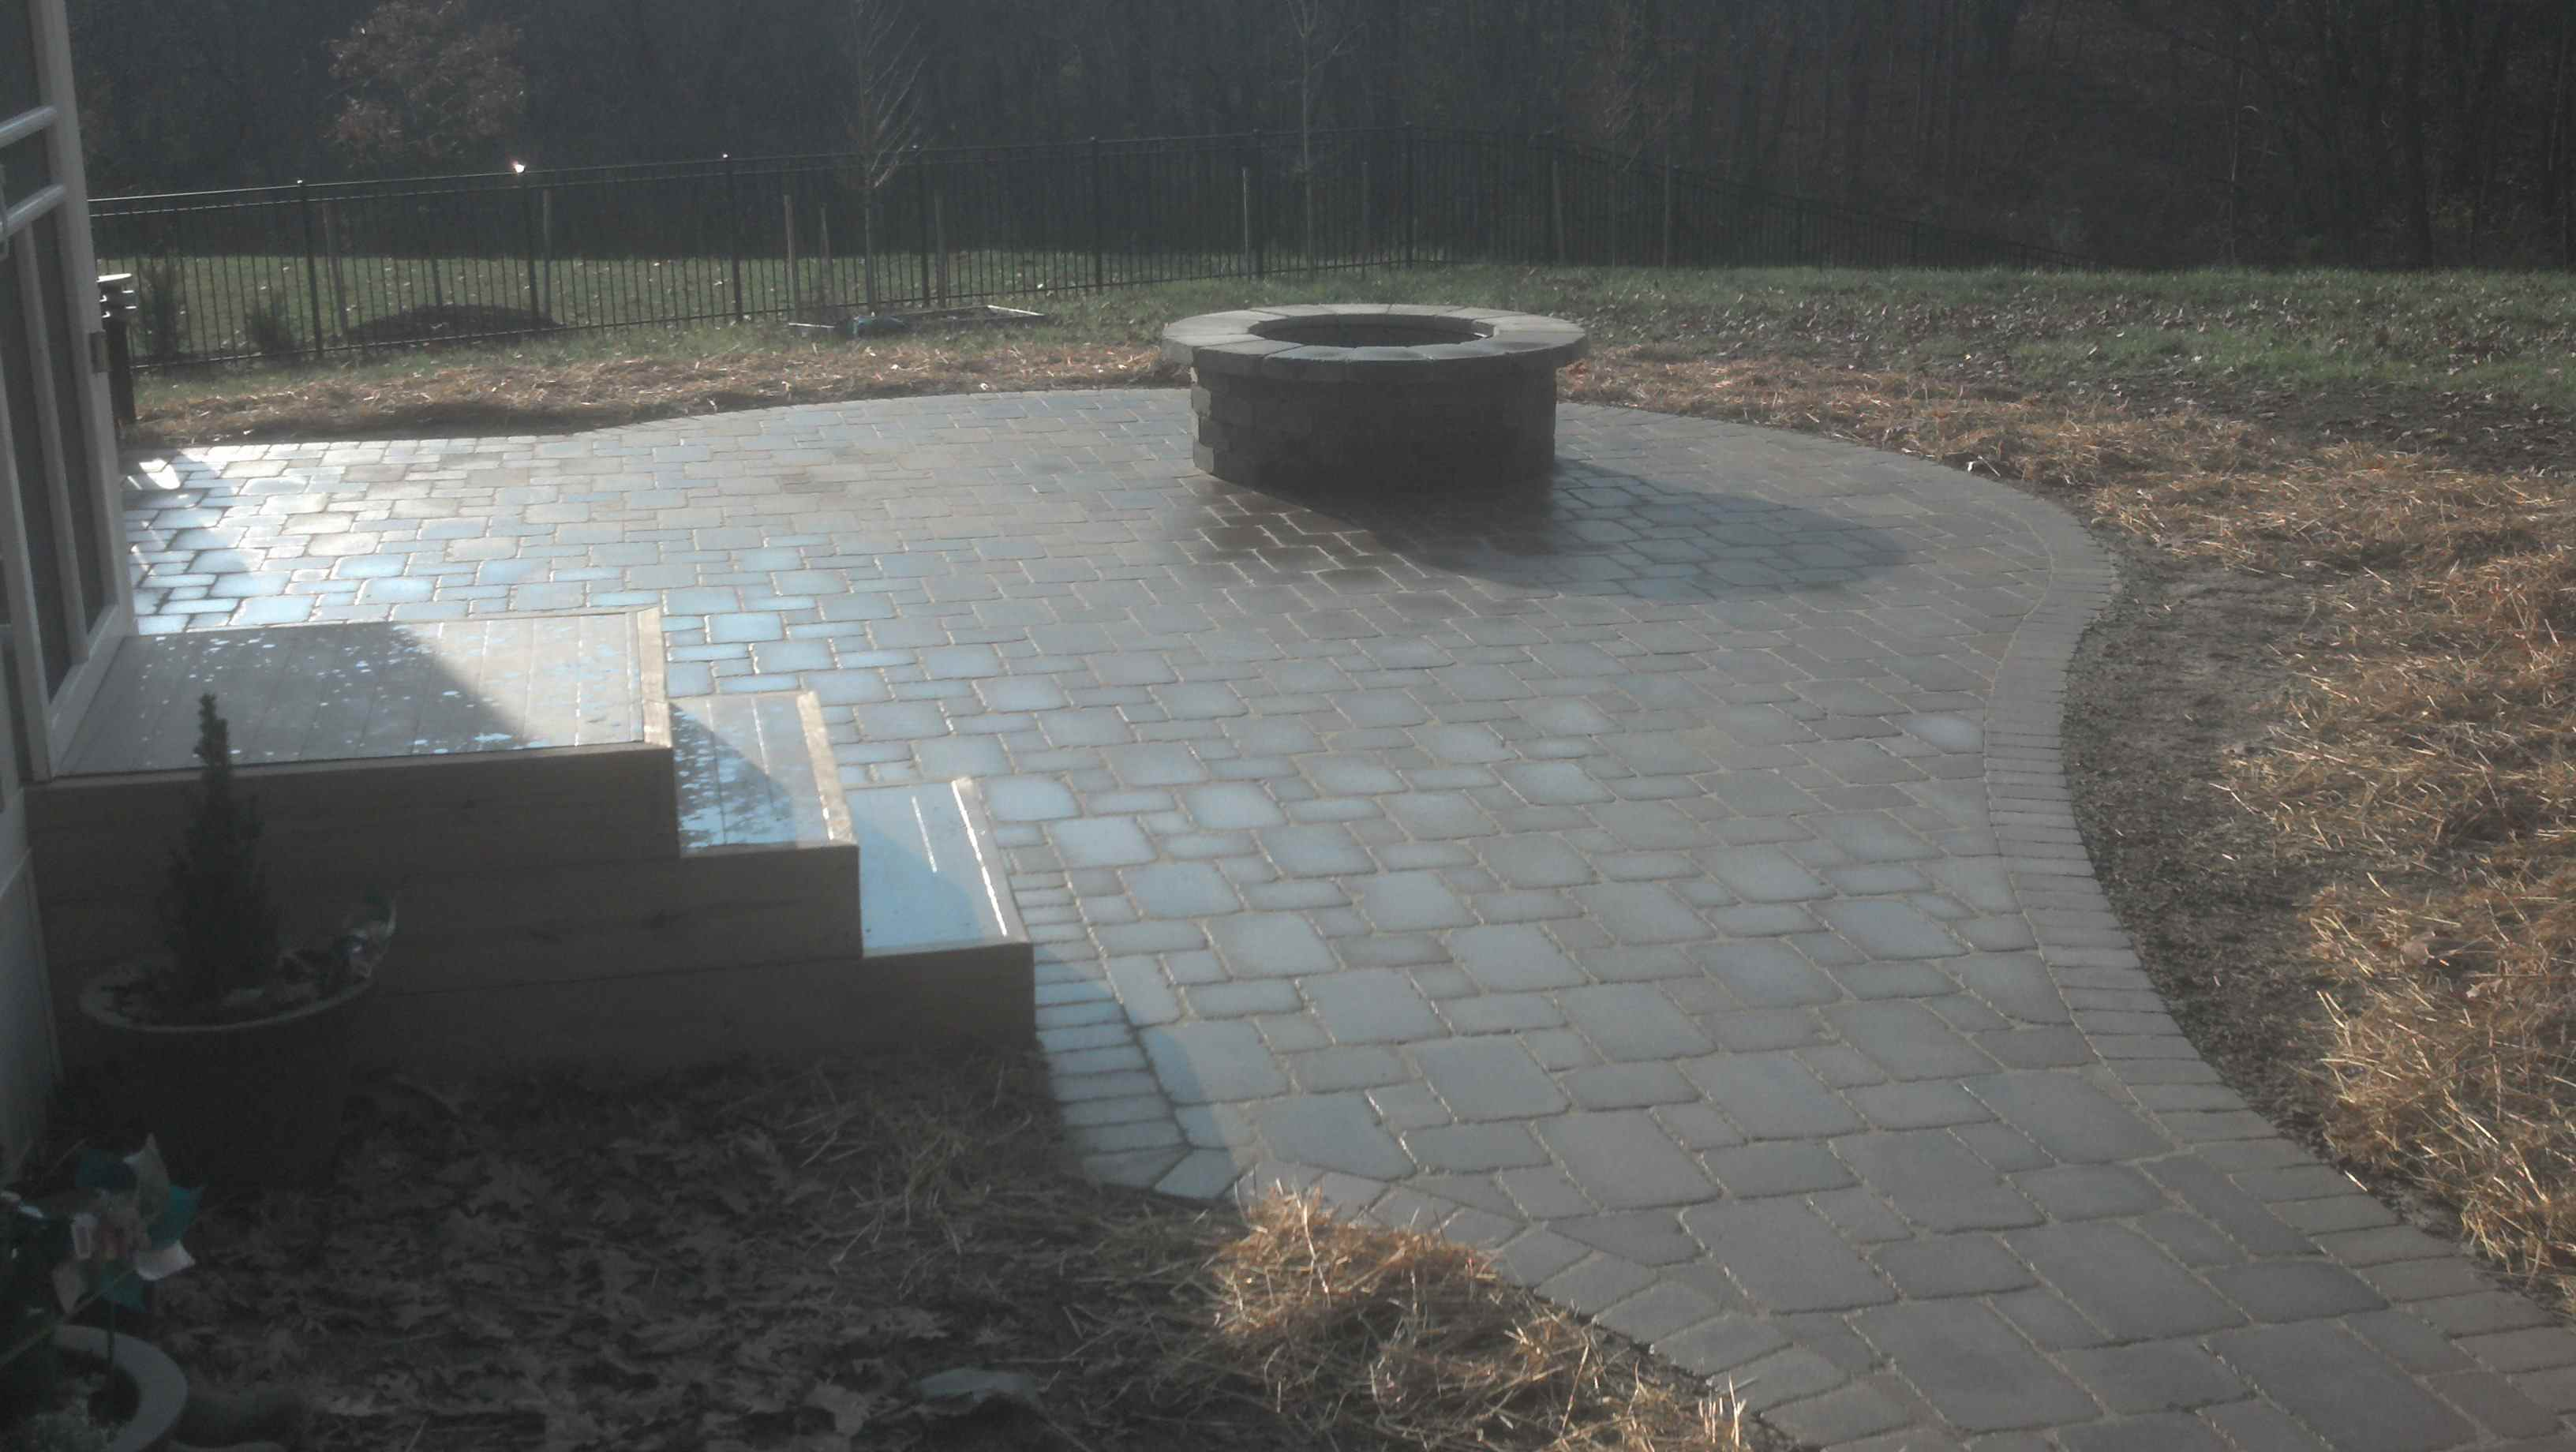 Fire Pit Area with Interlocking Stone Patio